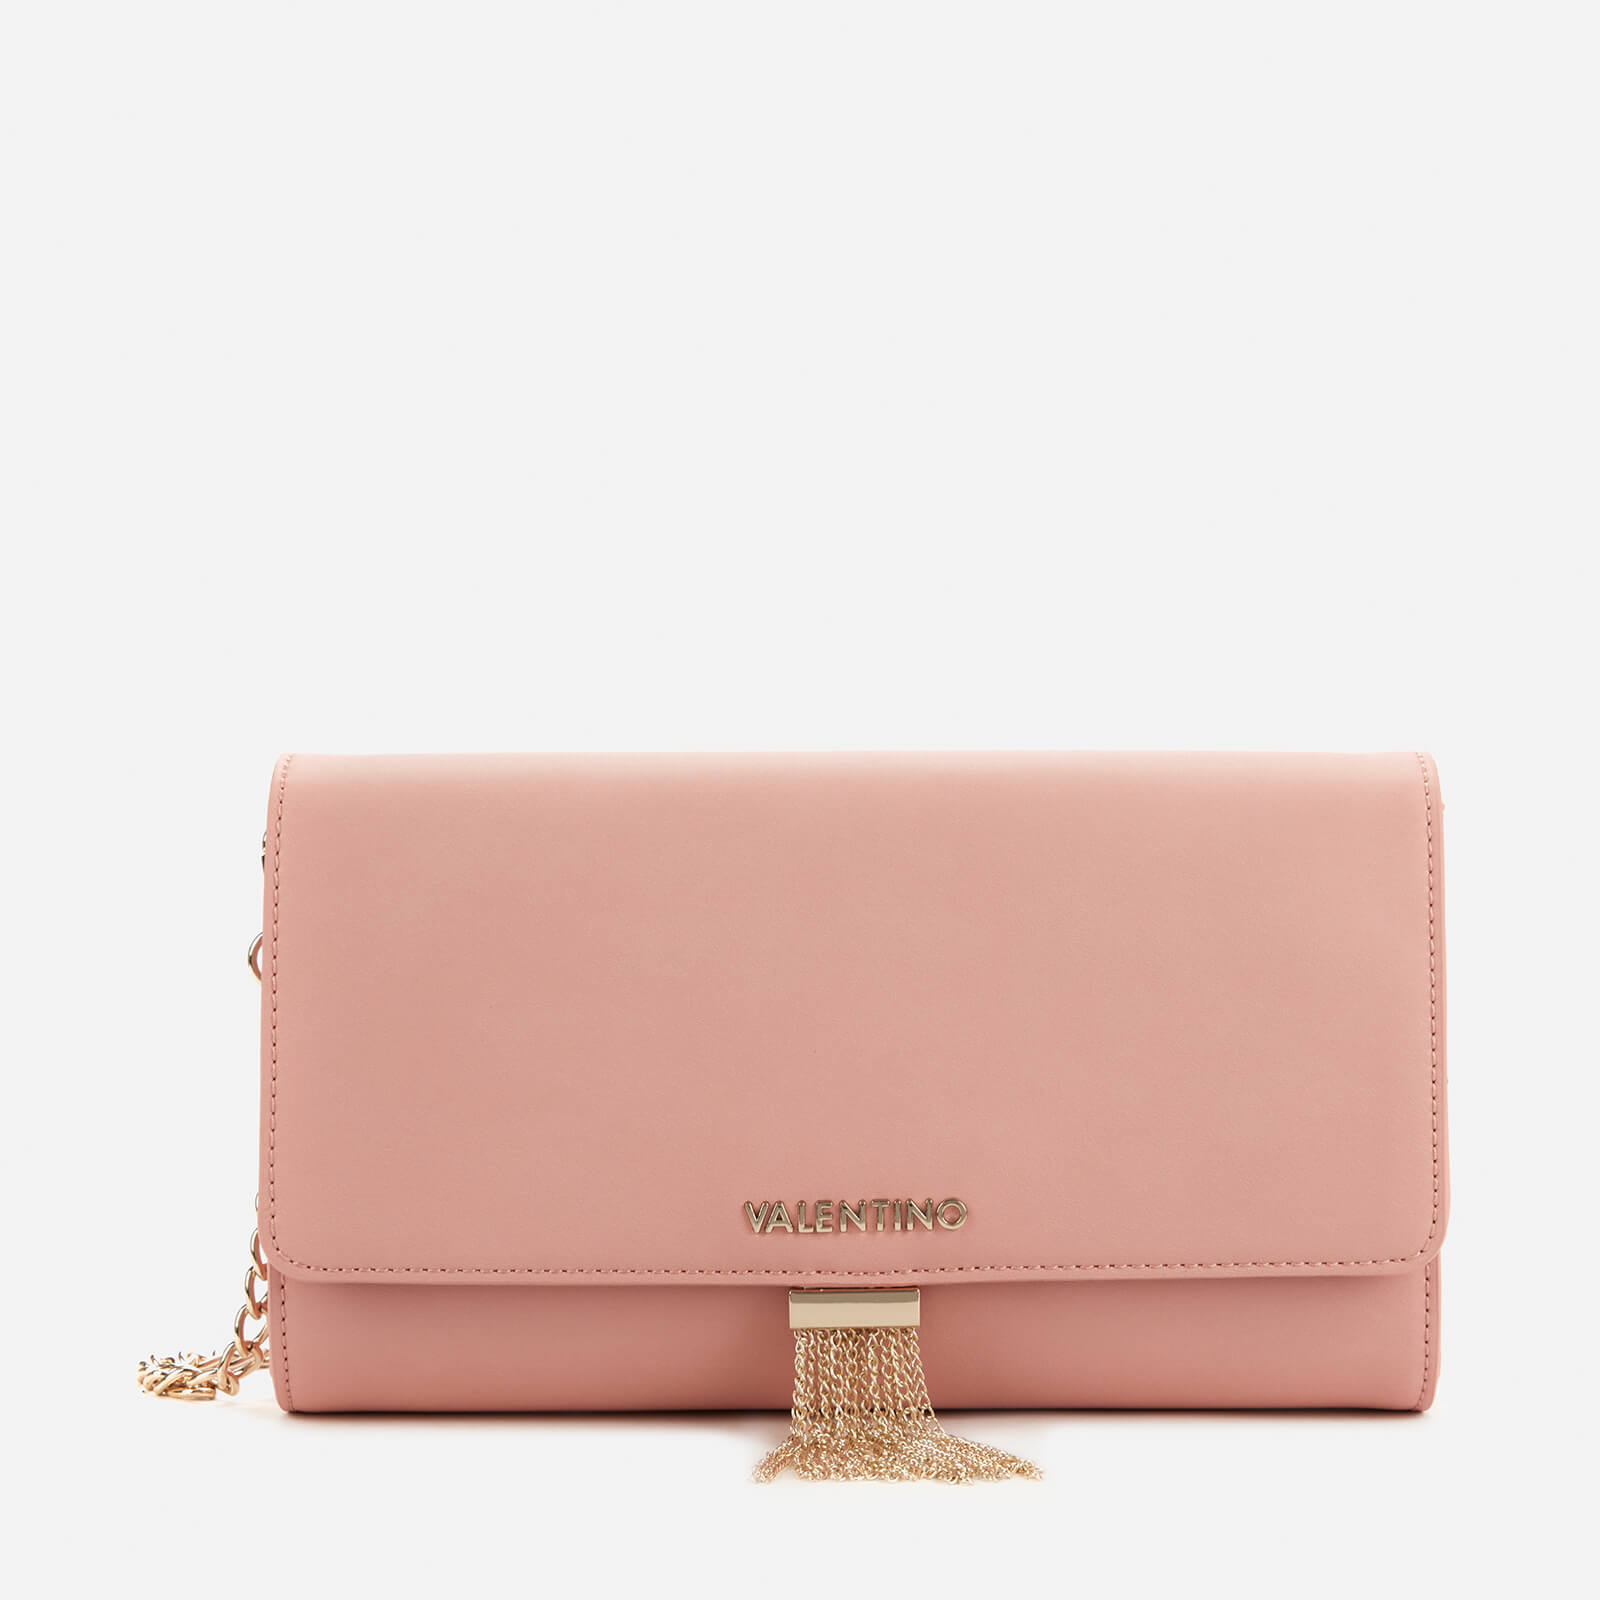 Valentino Bags Women's Piccadilly Large Shoulder Bag - Pink